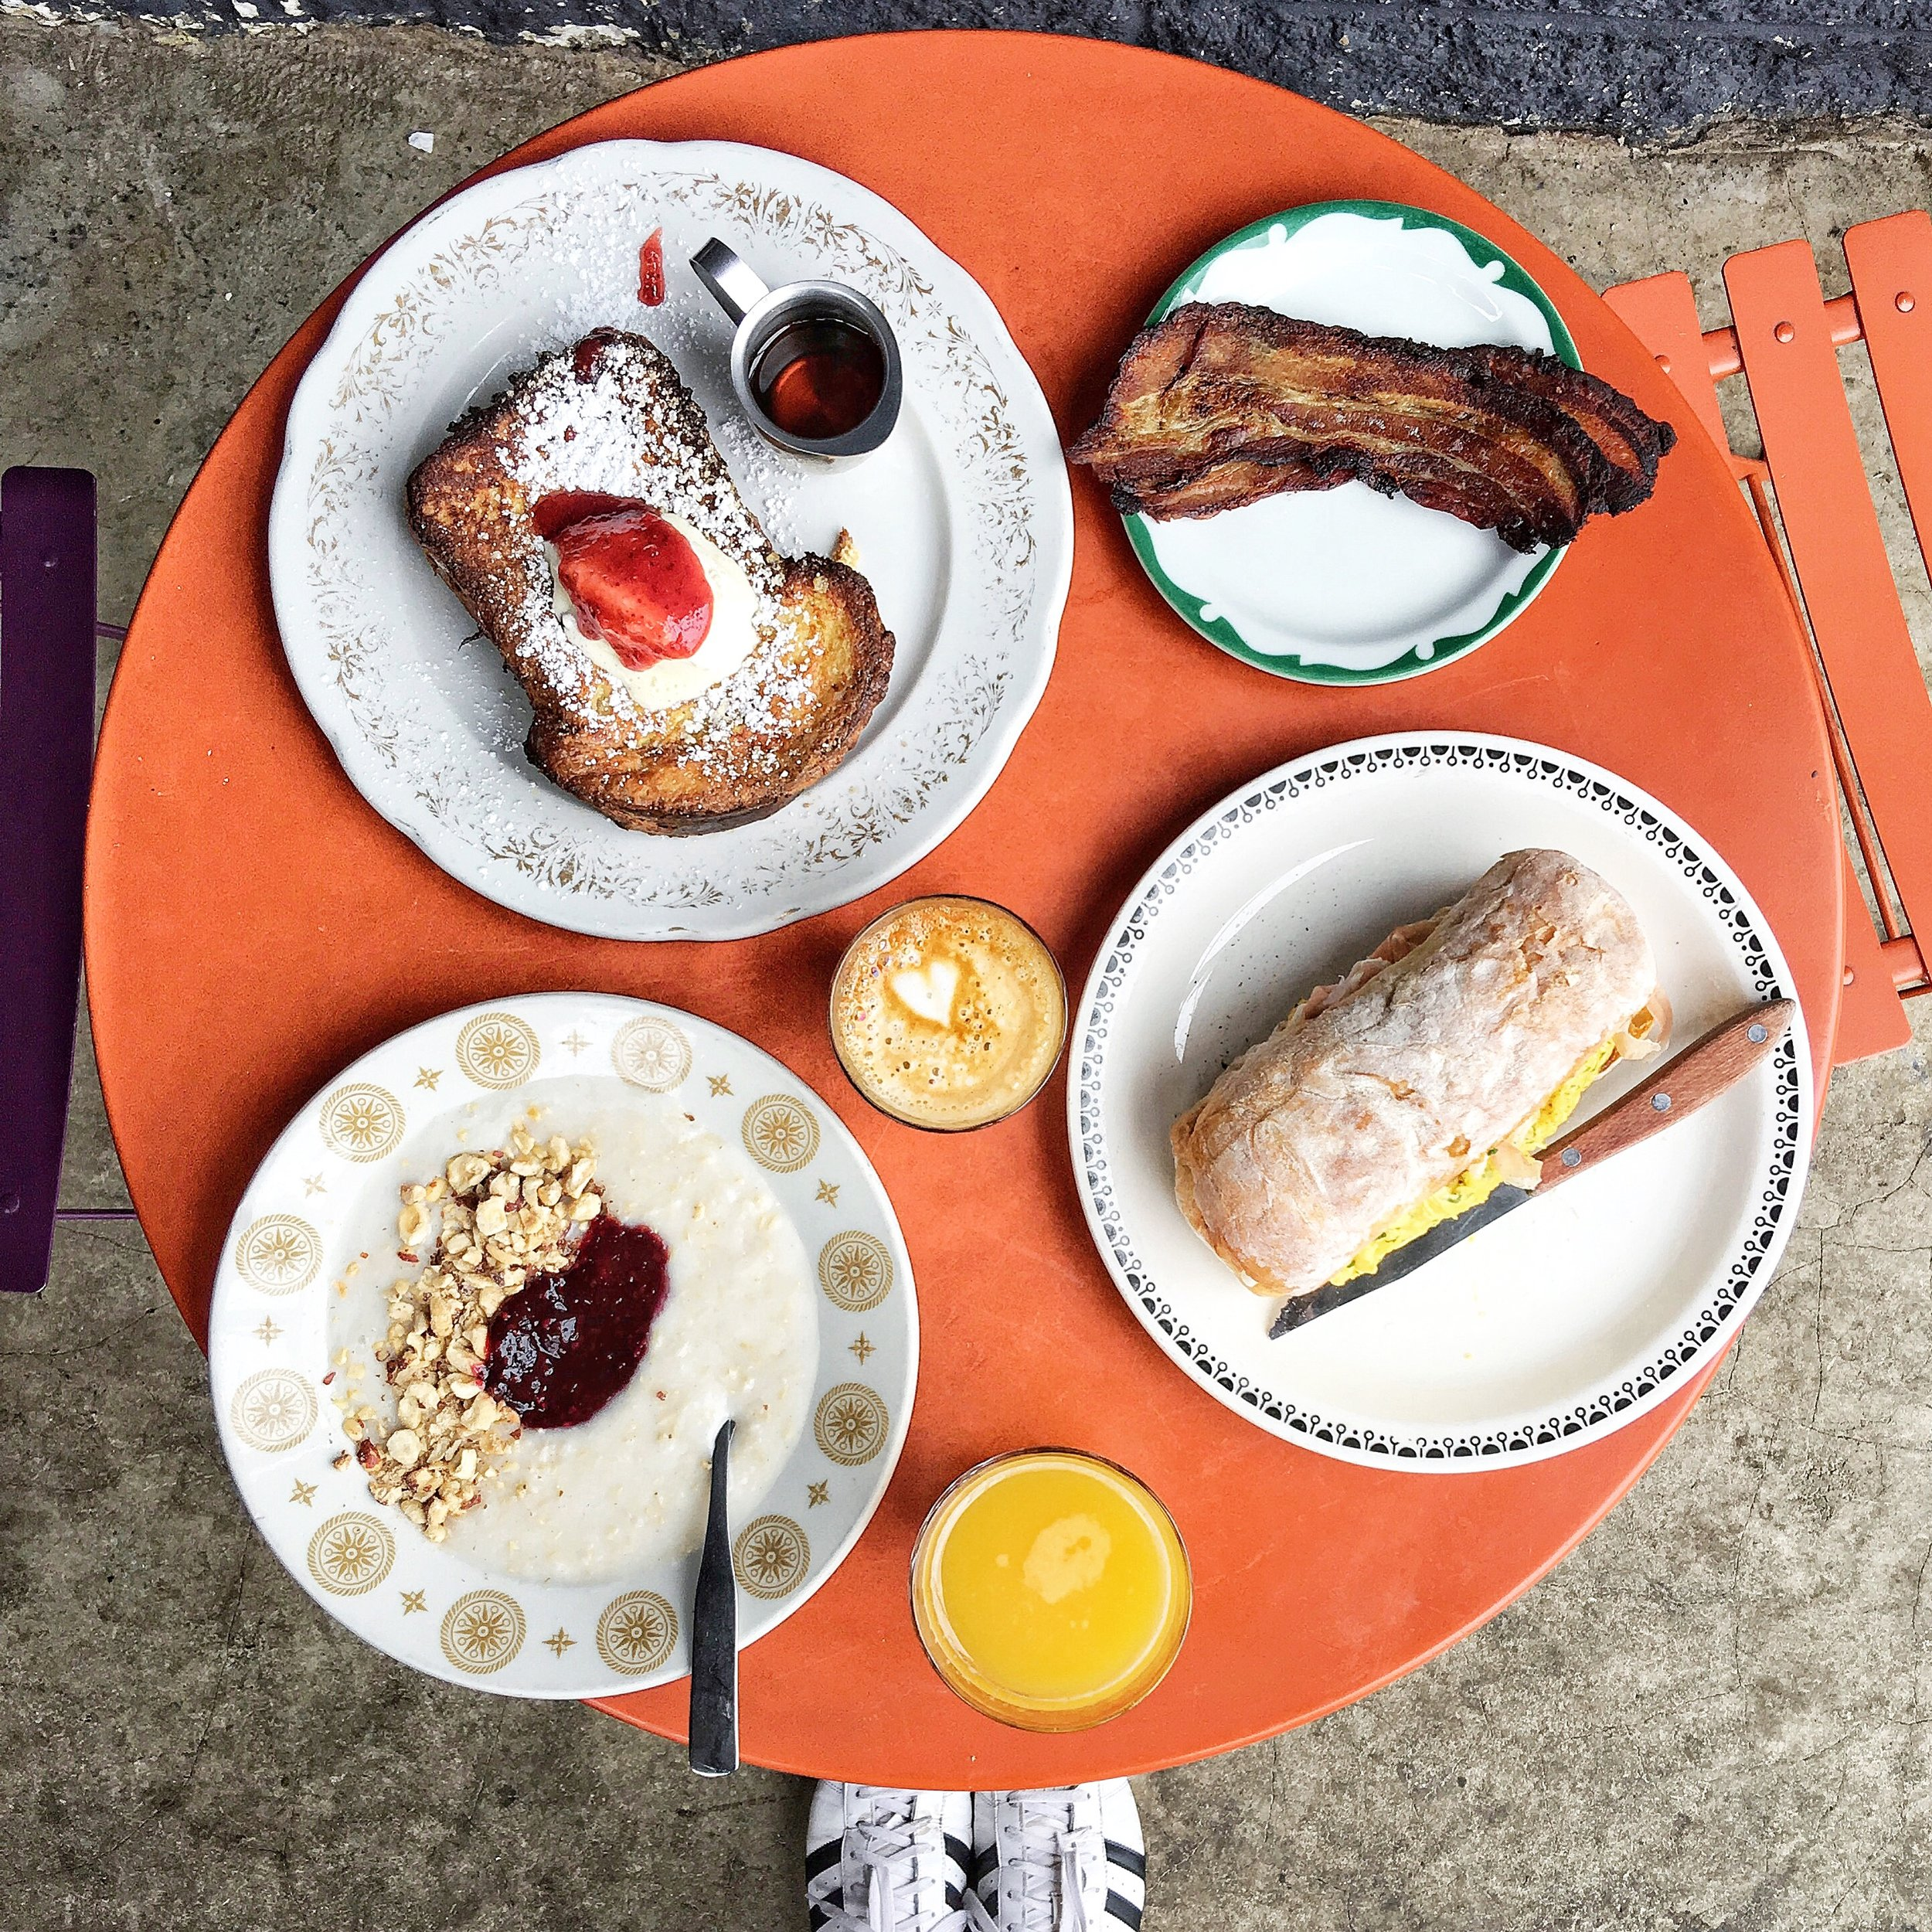 French toast, the Mosca Breakfast Sandwich and Brown Rice Porridge